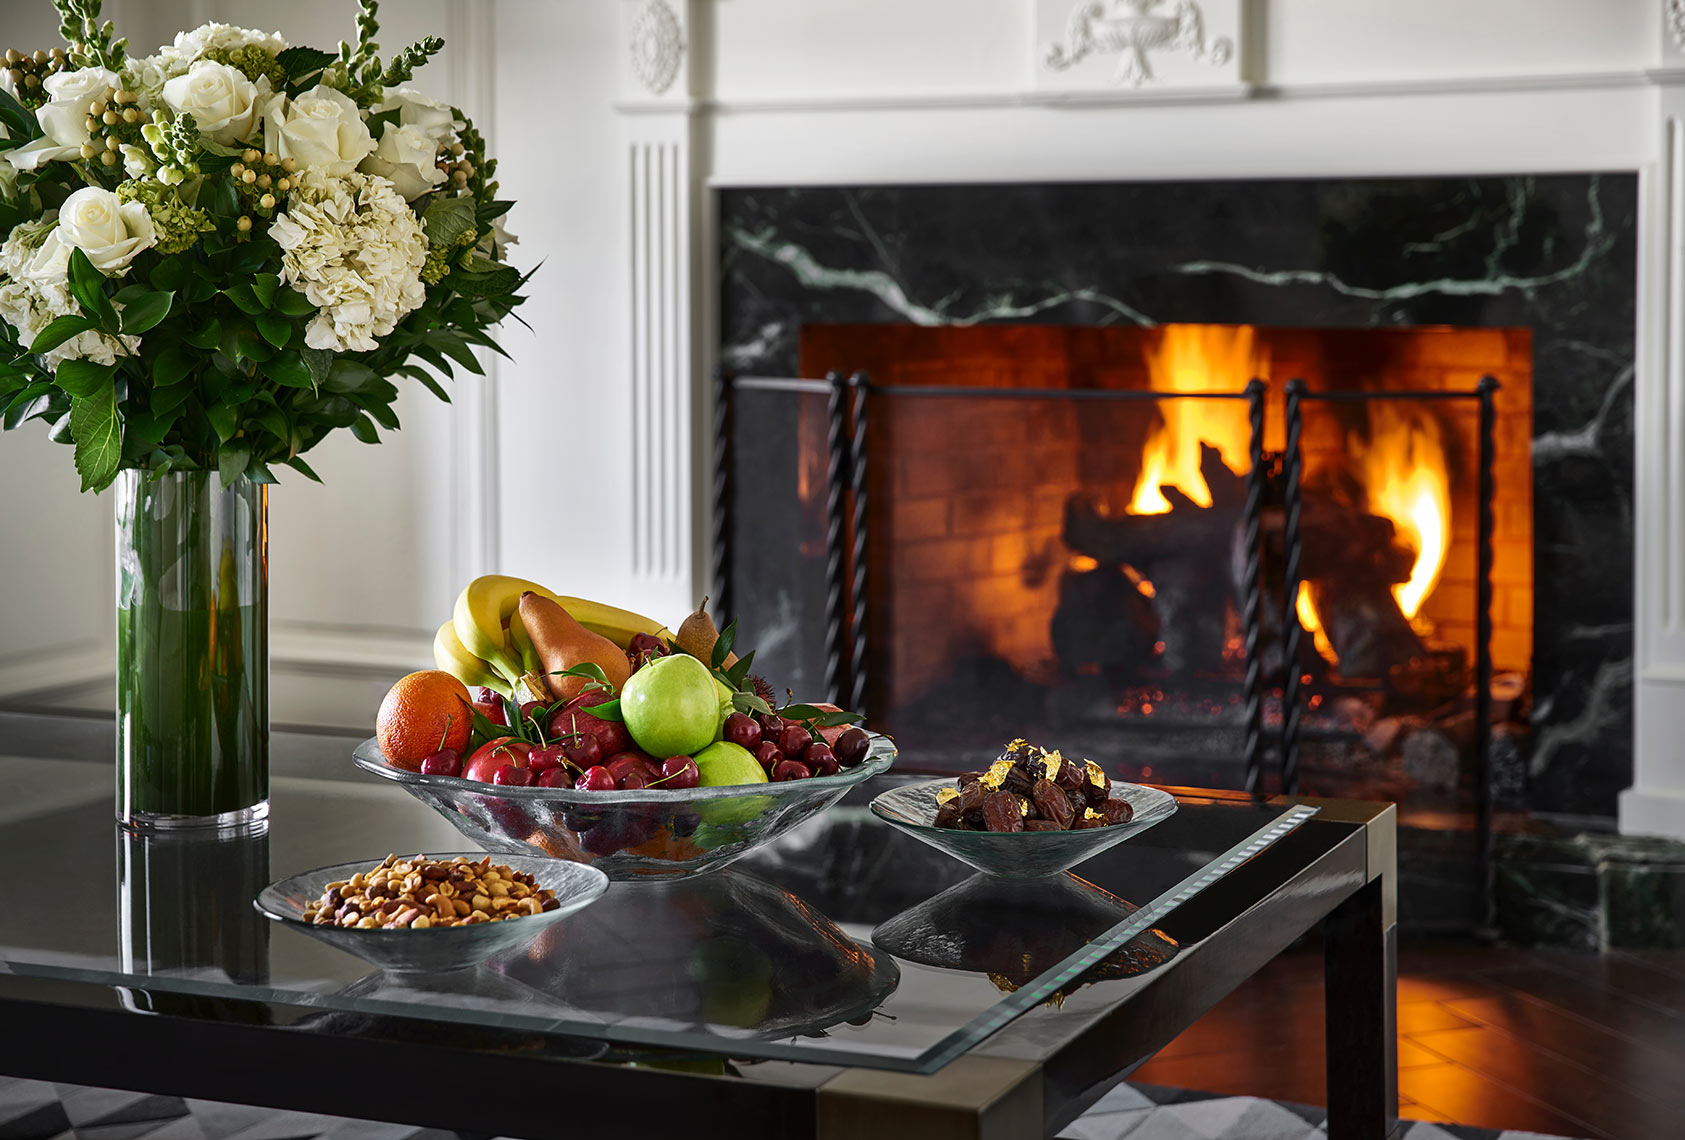 The-Ritz-Carlton-Tysons-Fire-Place-Flowers